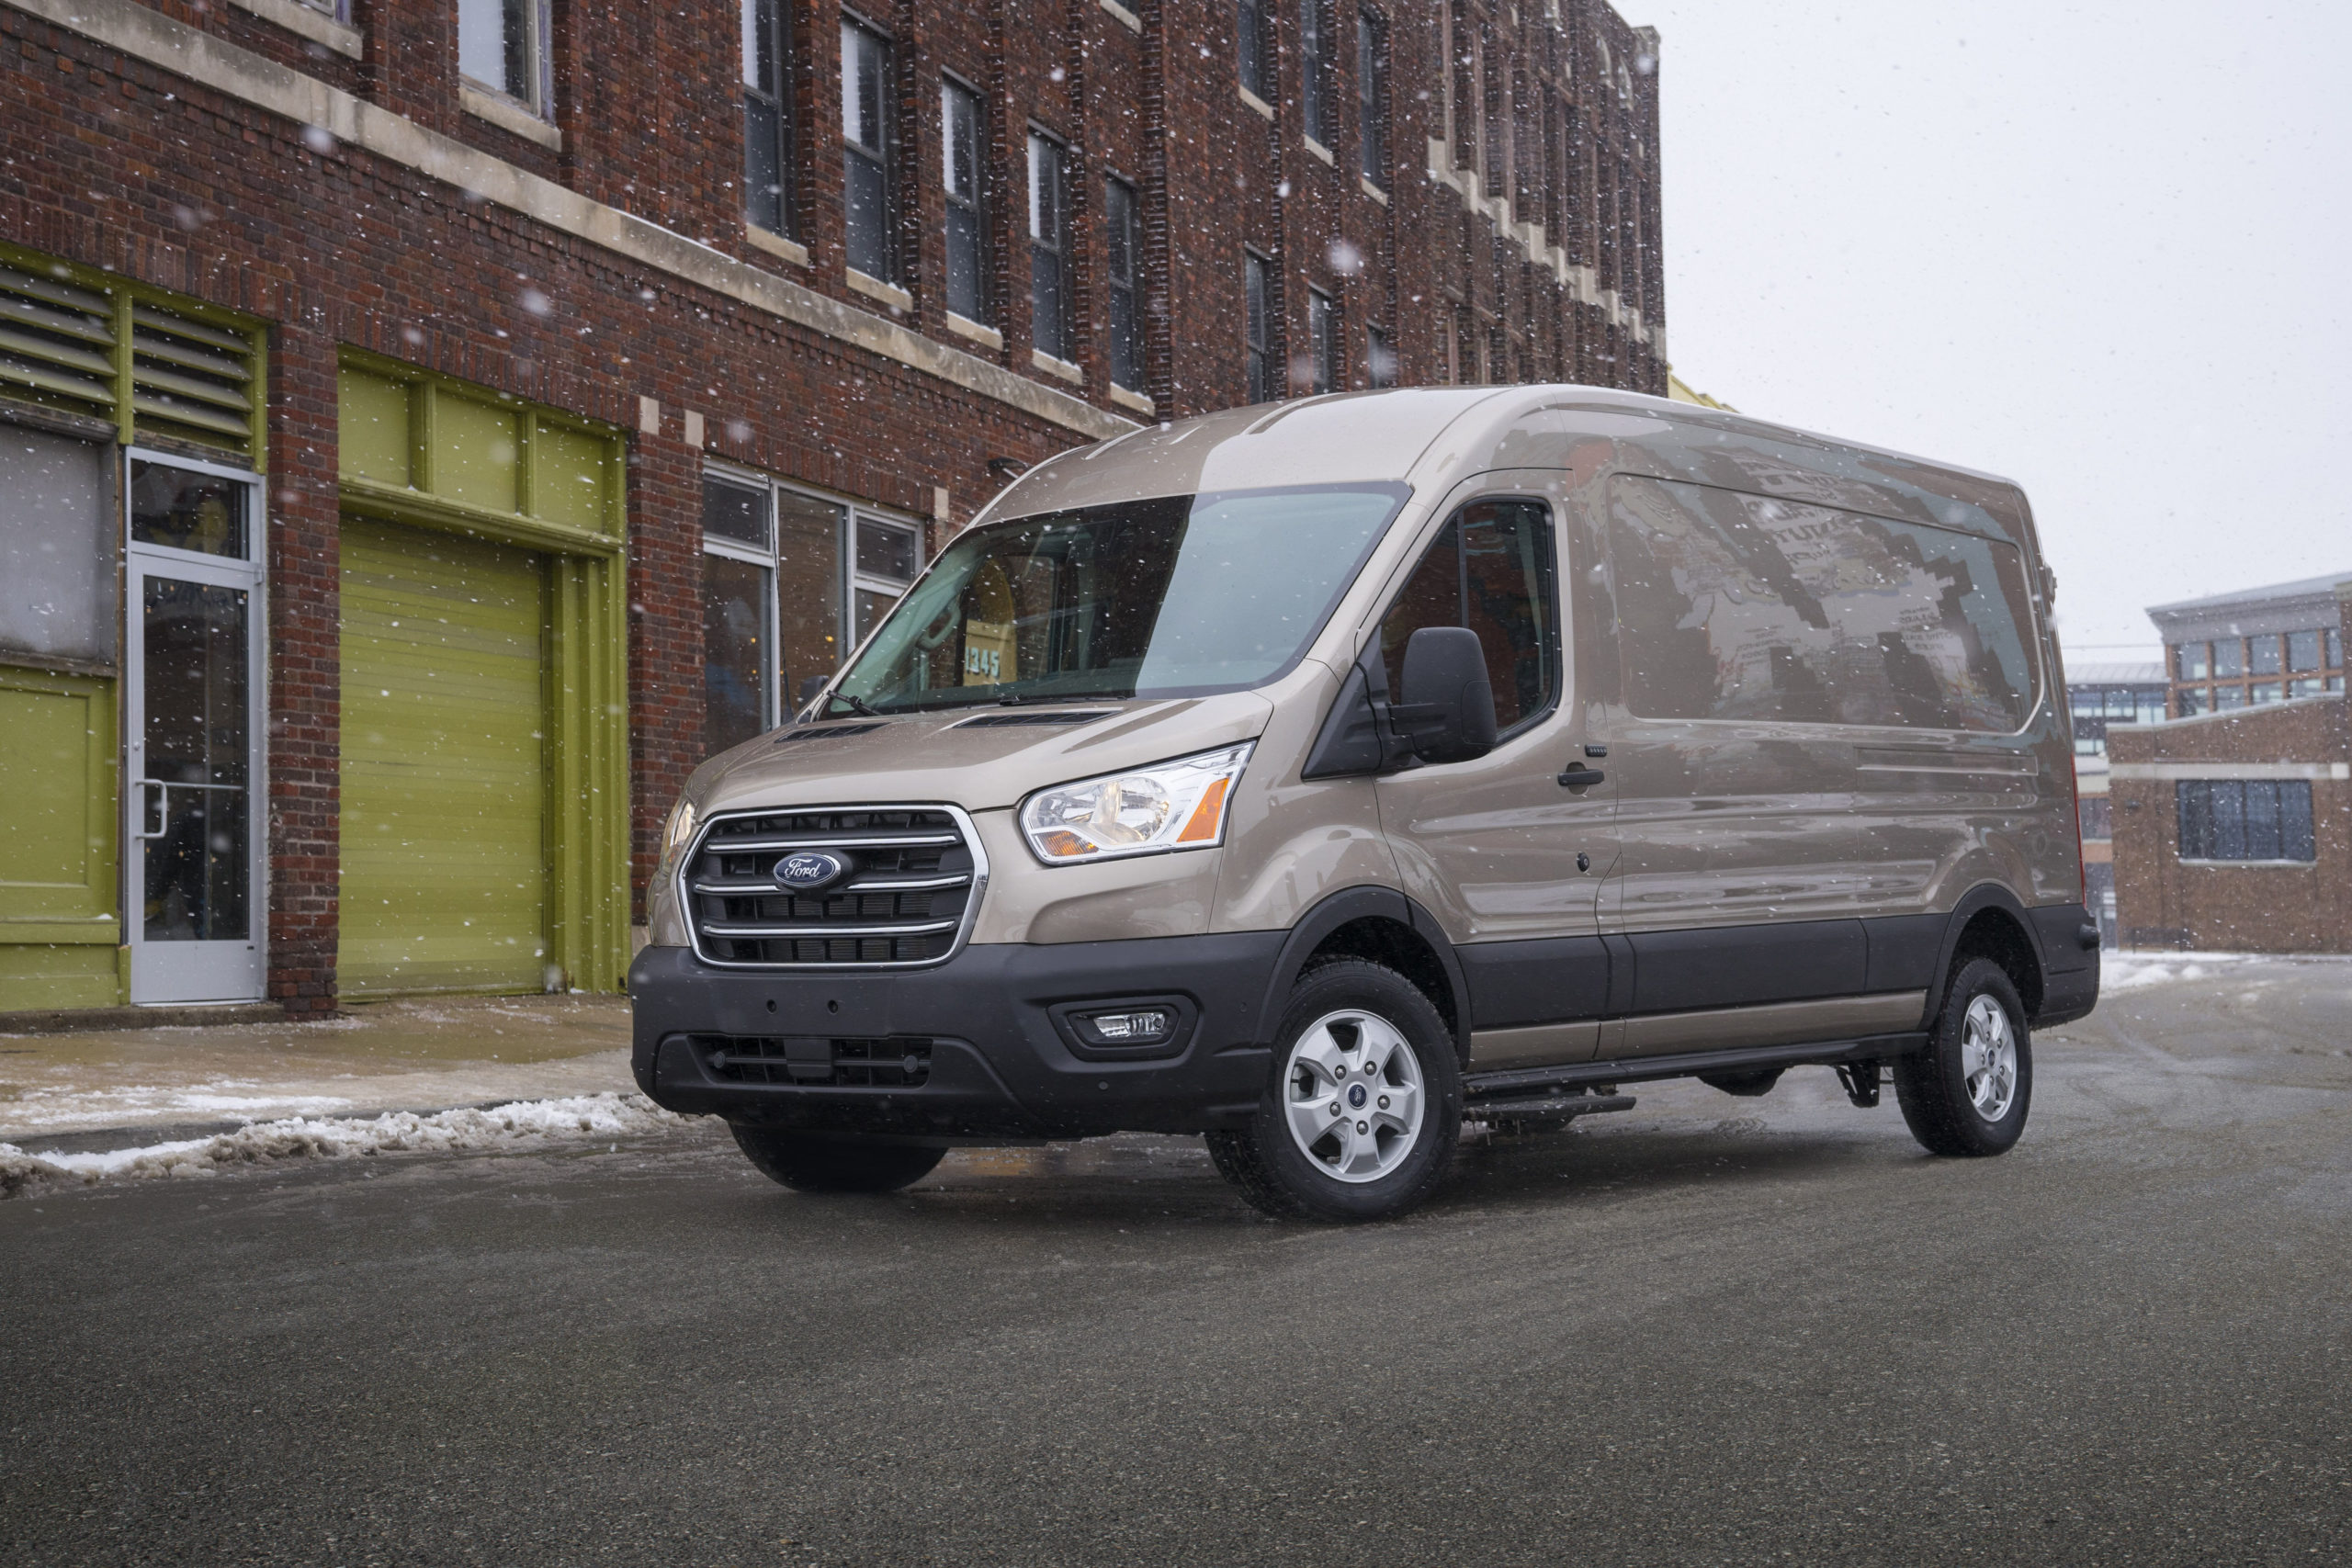 2021 Ford Transit Review, Pricing, And Specs - Newsopener